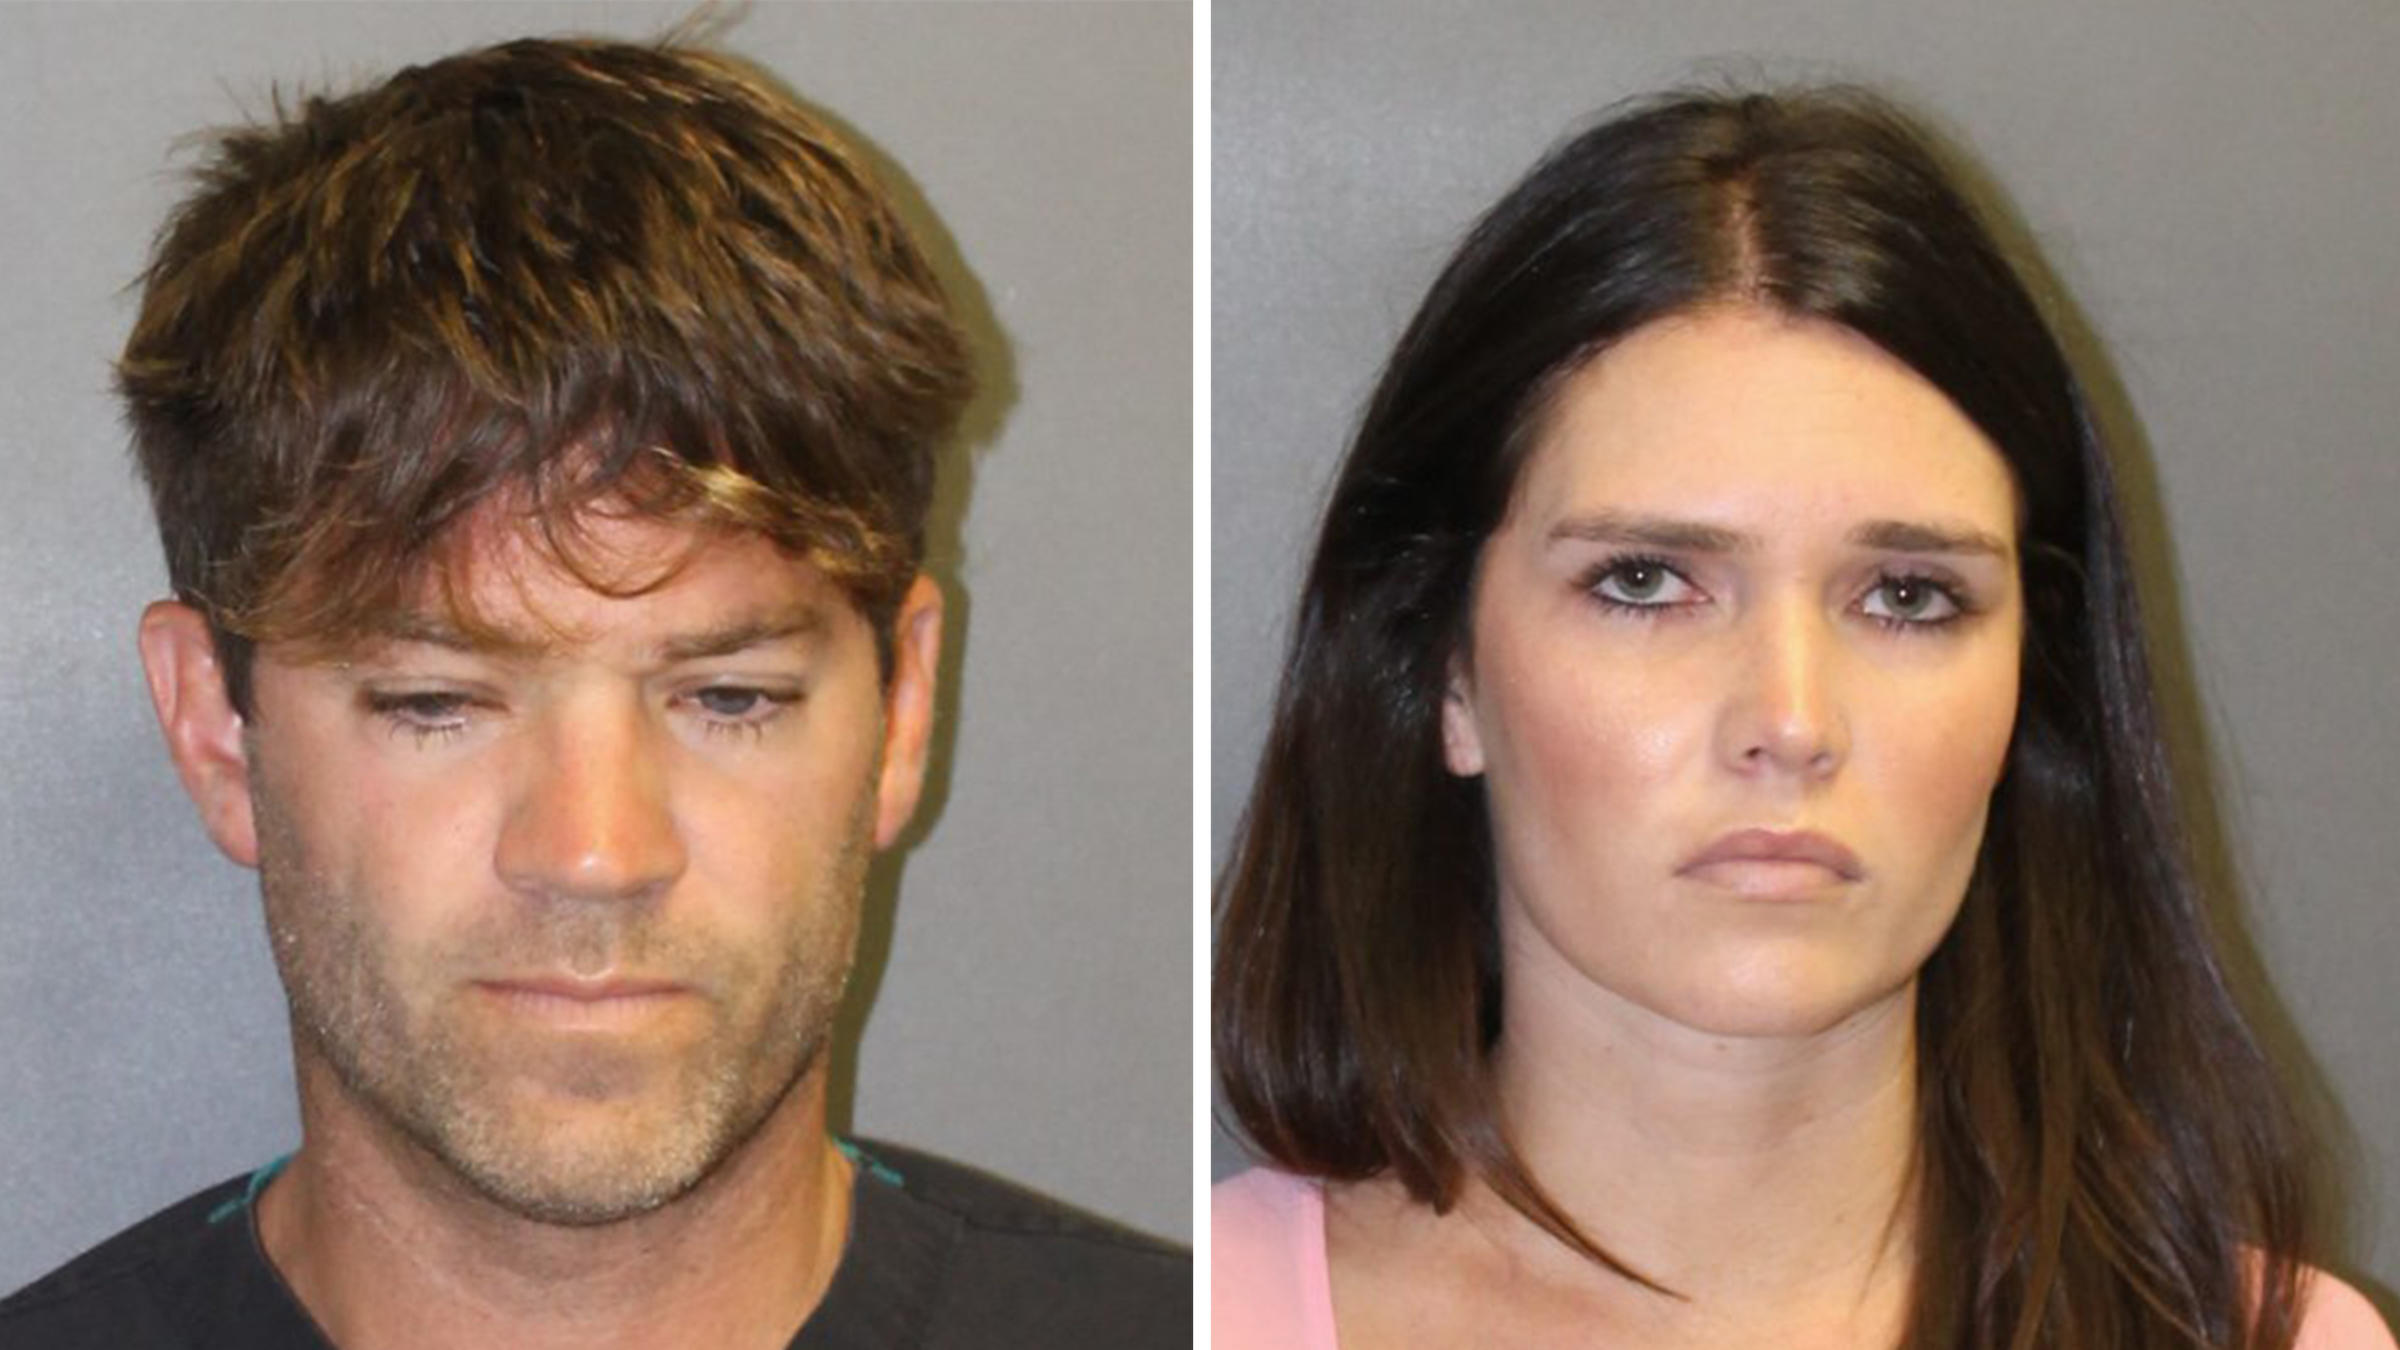 Doctor and woman accused of drugging, raping women and filming alleged incidents